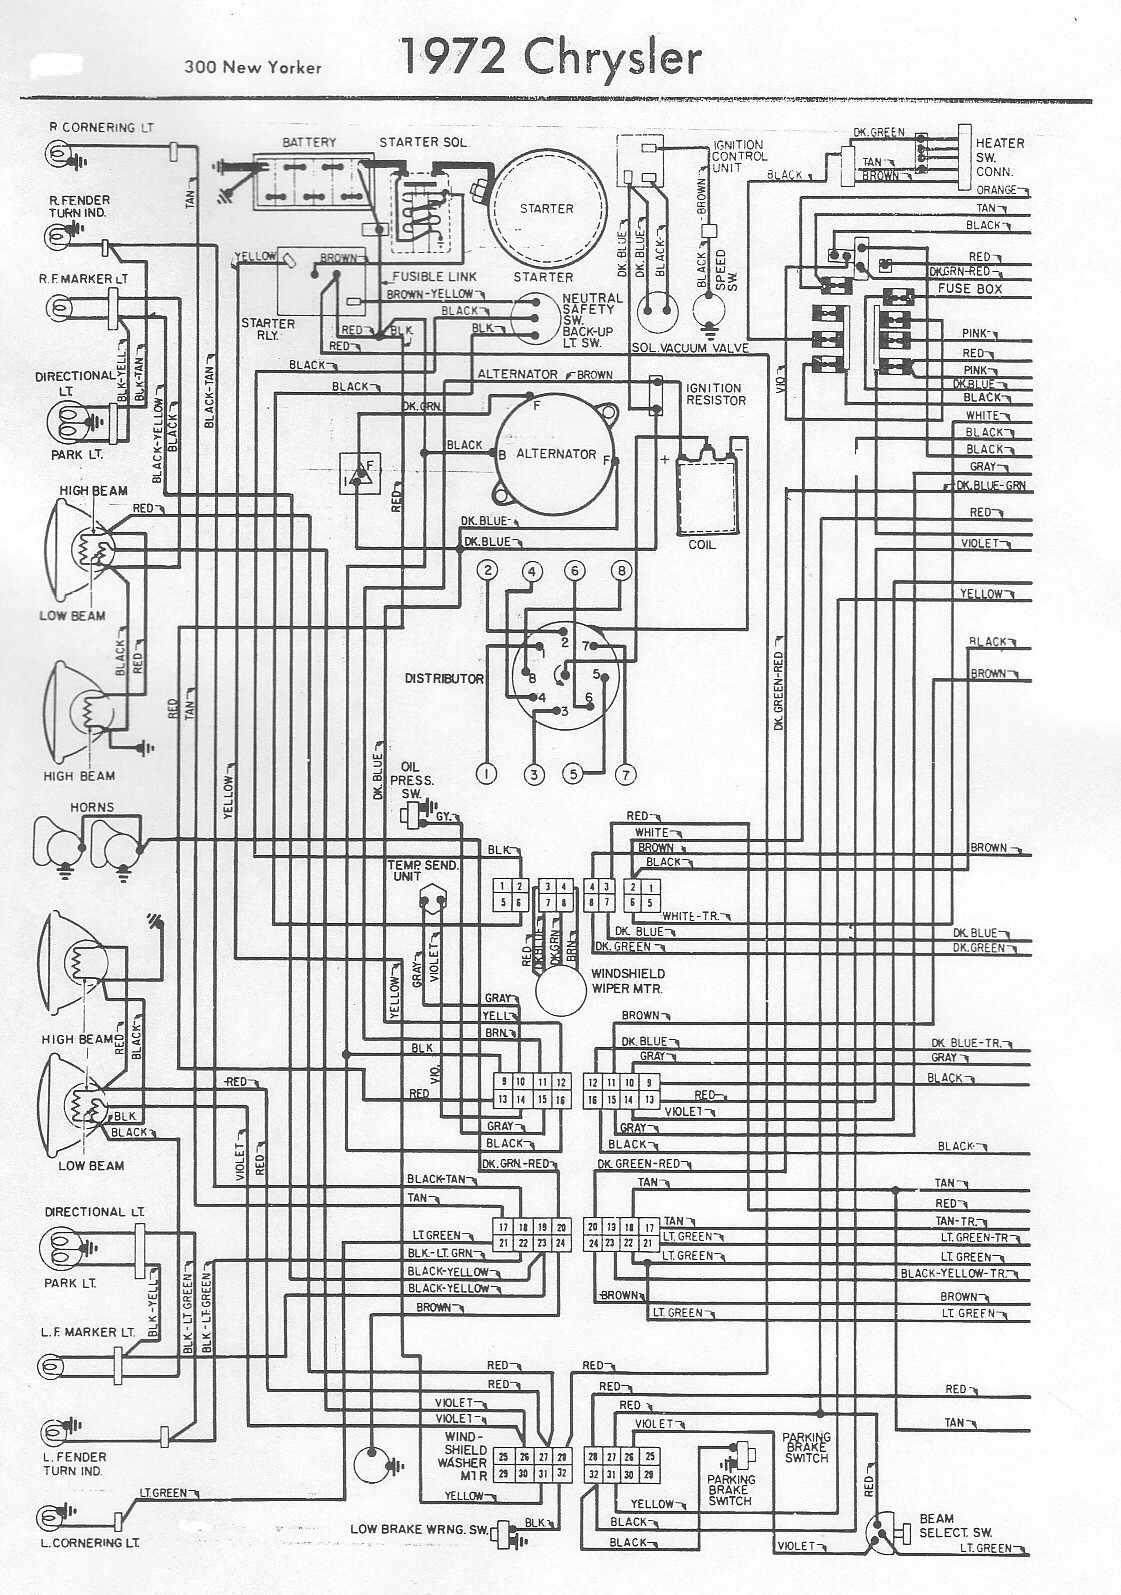 1967 Cadillac Deville Fuse Box - All of Wiring Diagram